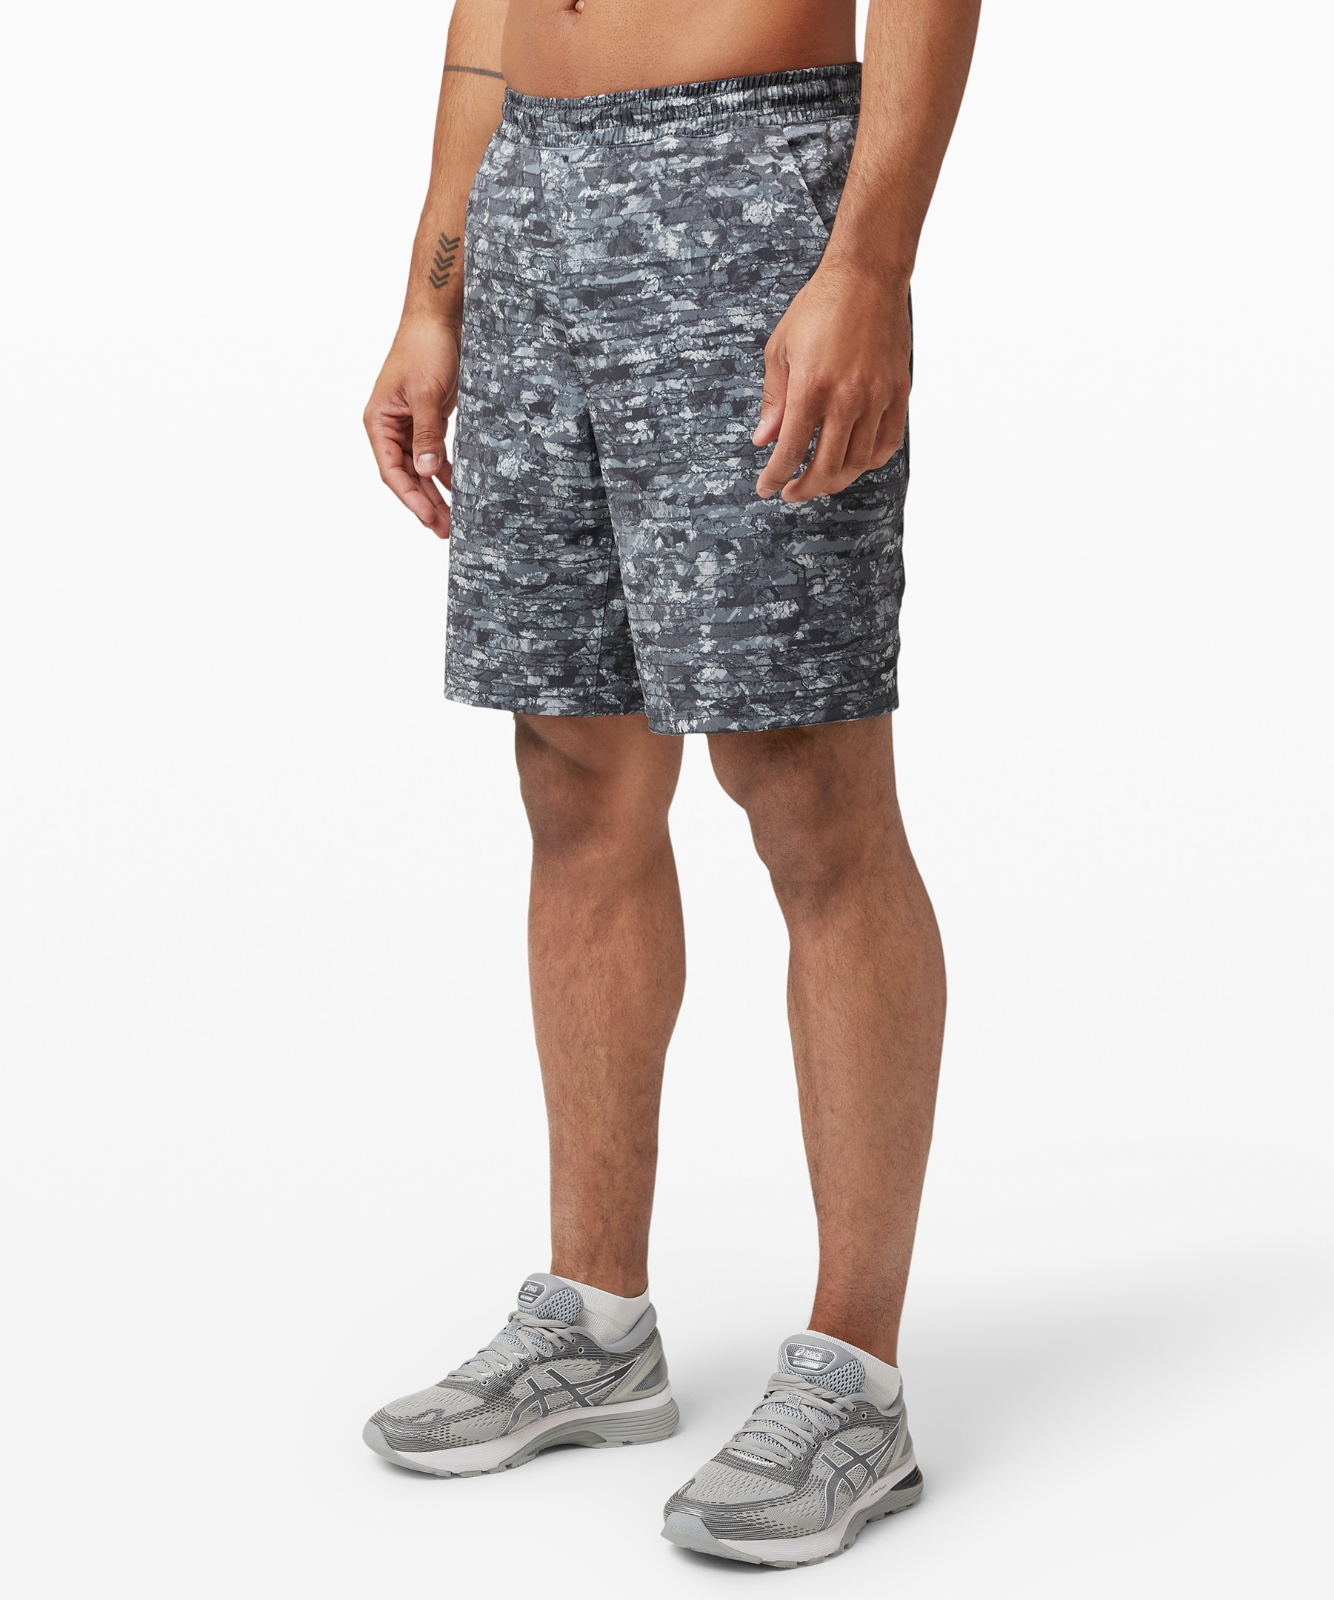 lululemon Pace Breaker Short 9